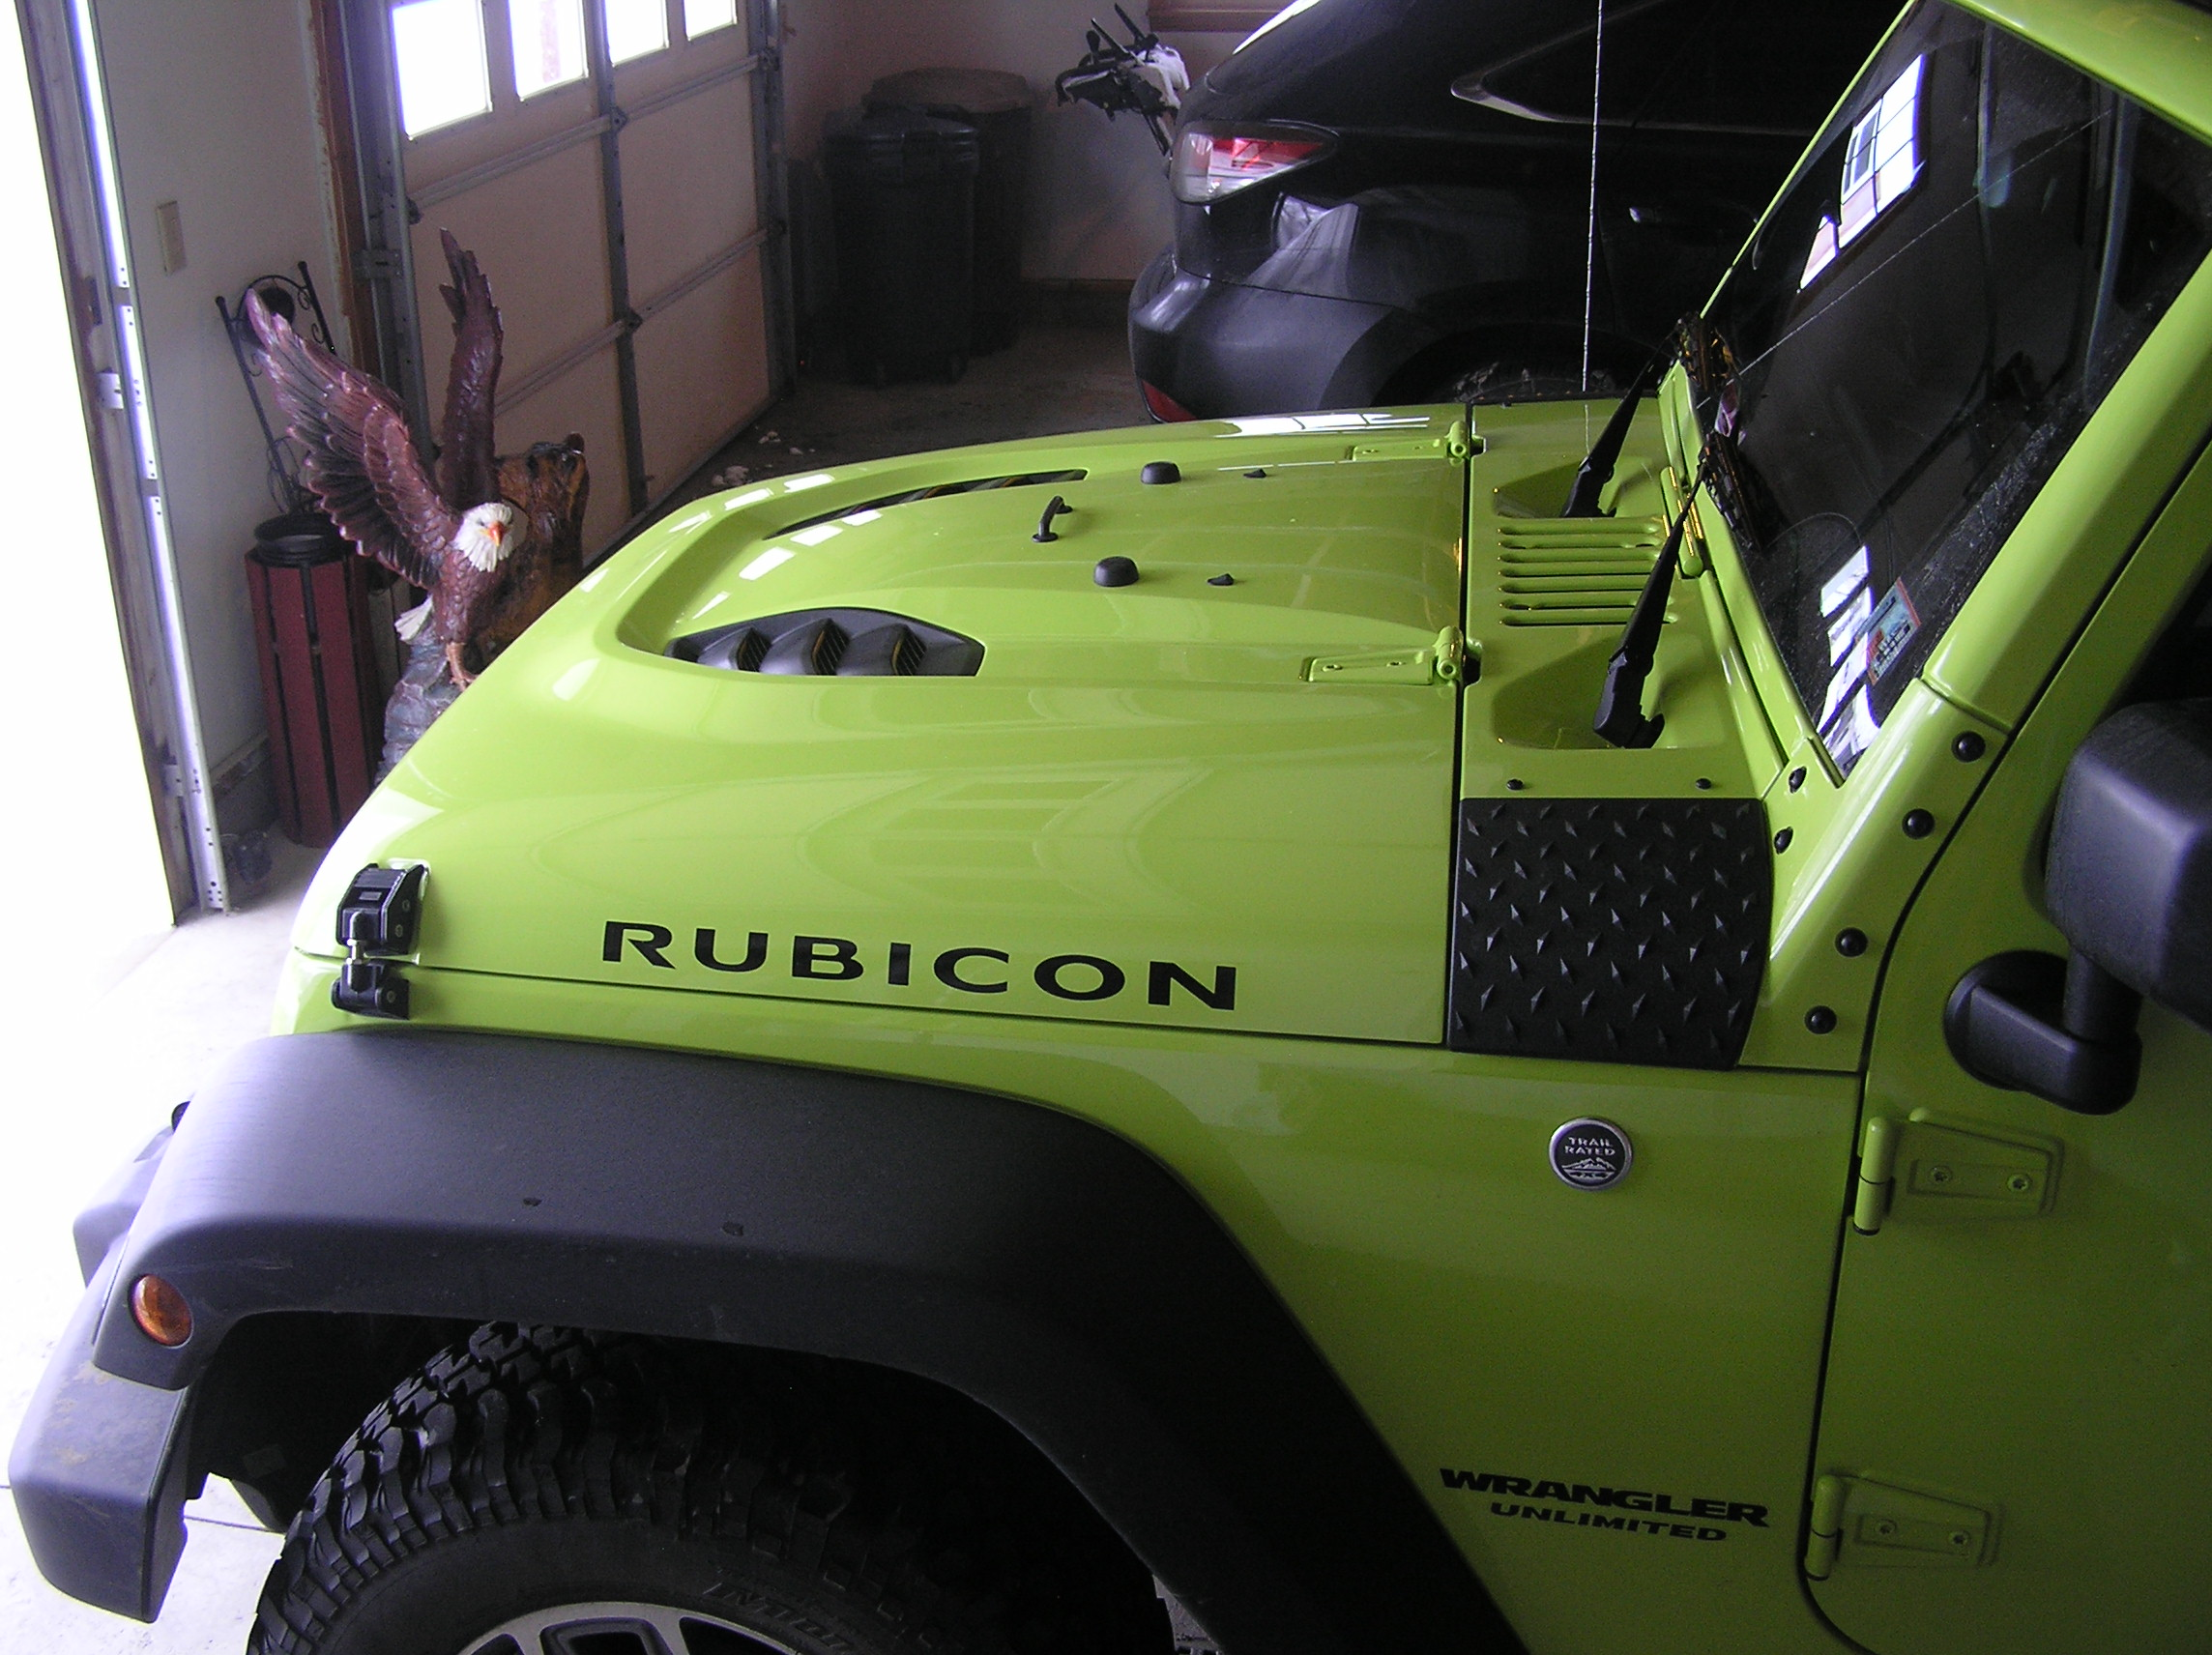 Installed Power Dome Hood Jeep Wrangler Forum Release This Image Has Been Resized Click Bar To View The Full